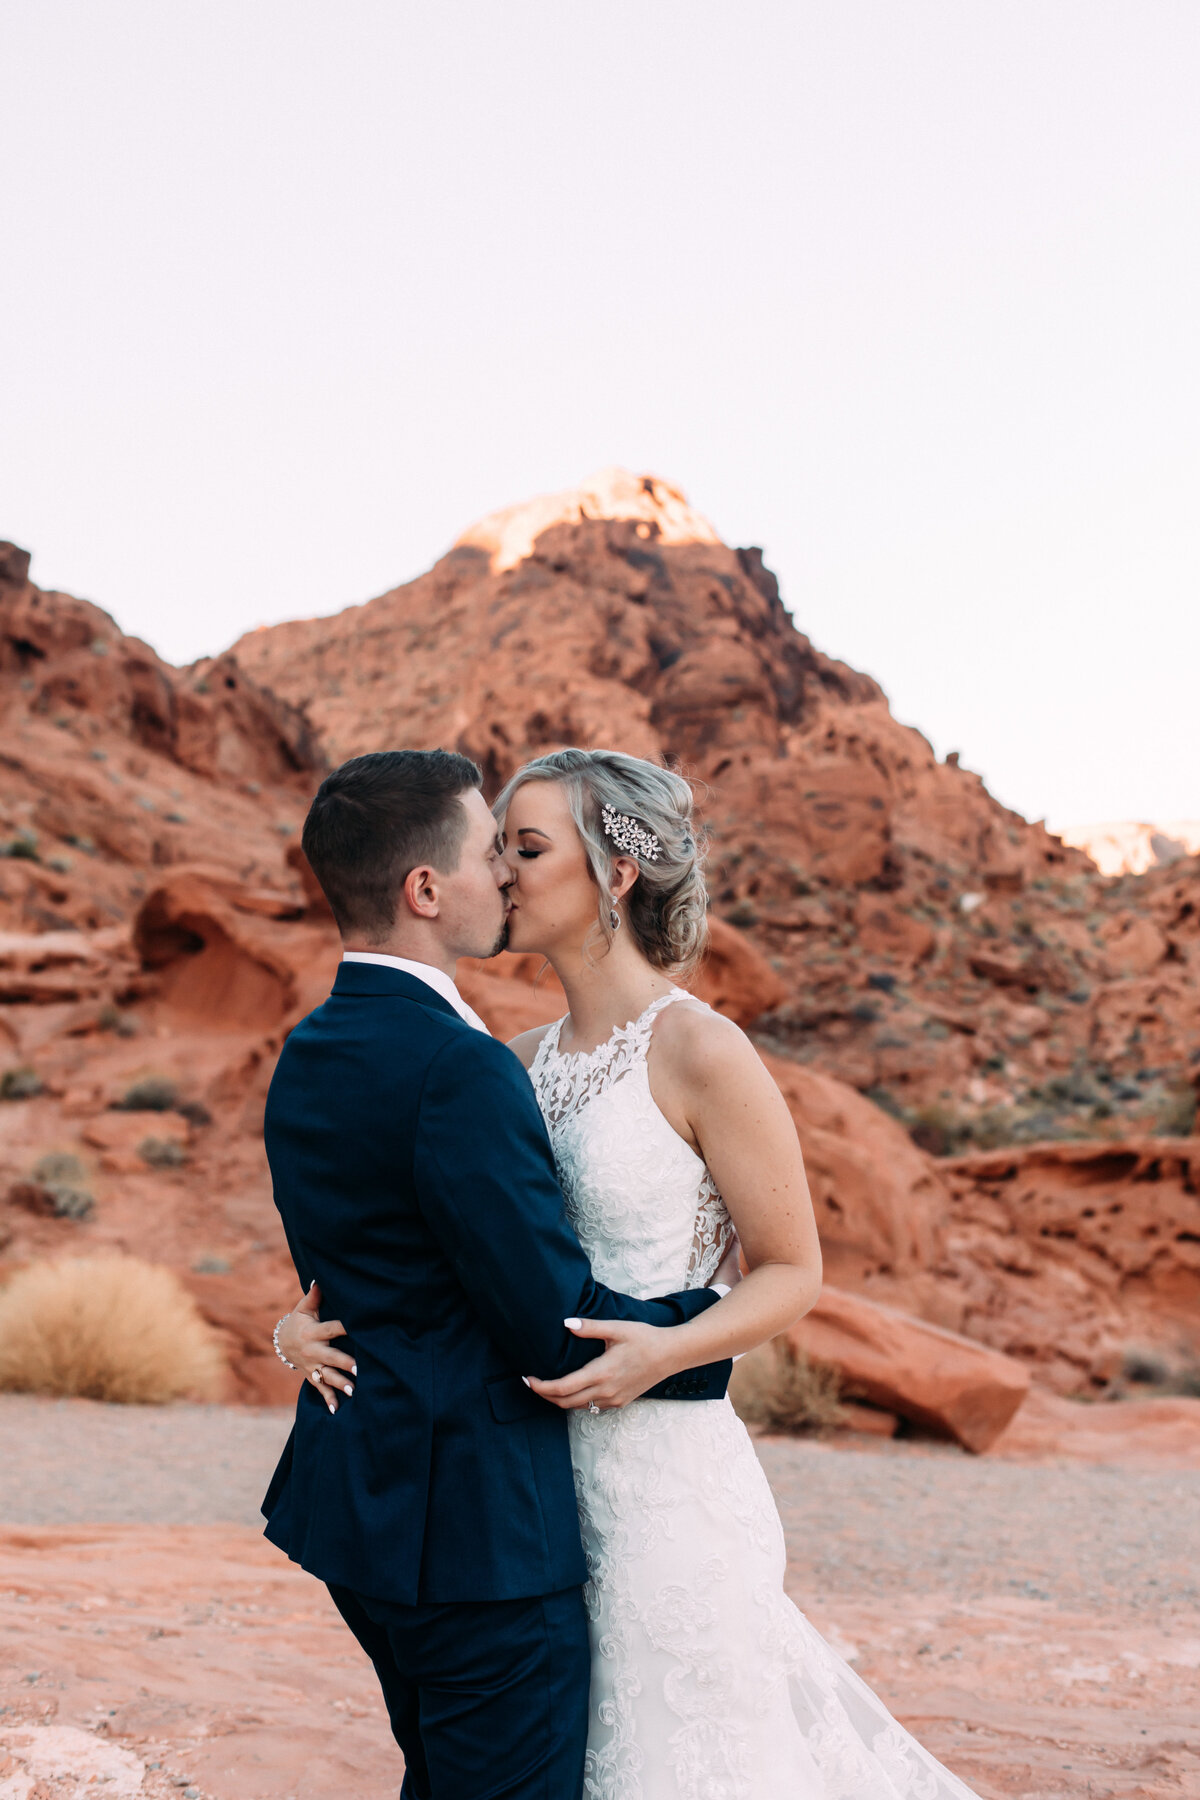 Heather+Ivan|AshlynSavannahPhoto|ValleyofFireElopement-82